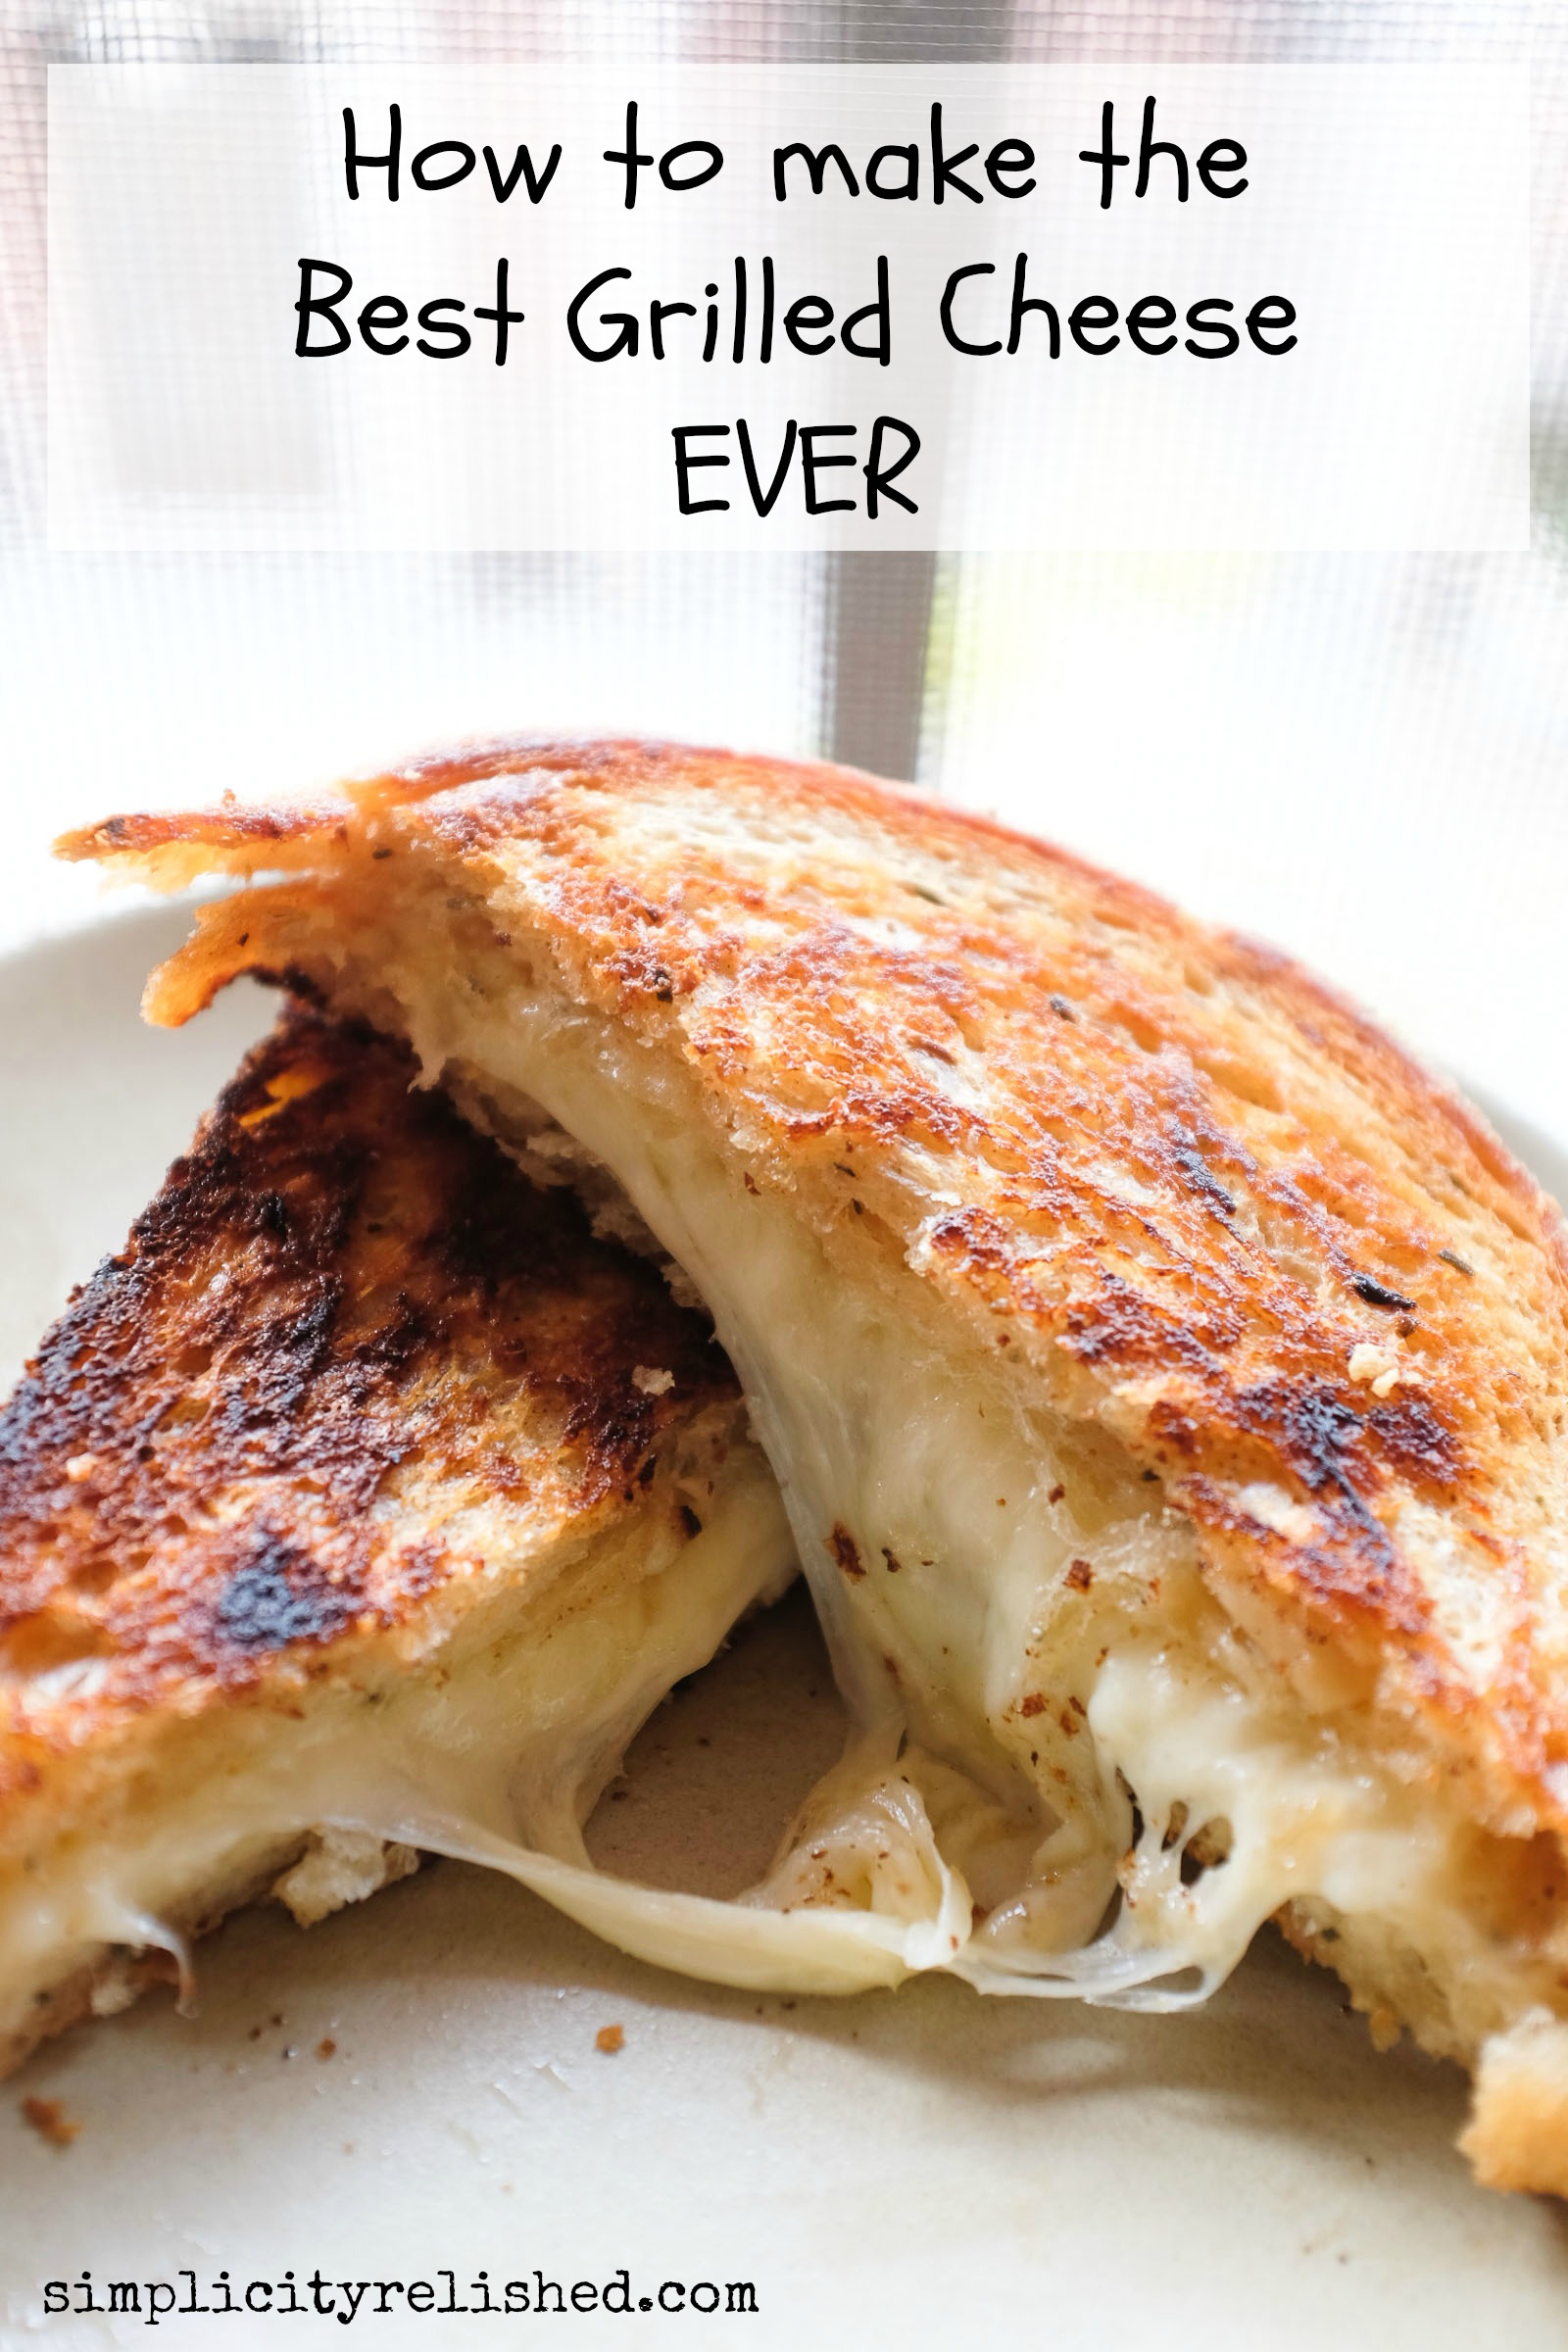 The Best Grilled Cheese Recipe | Simplicity Relished